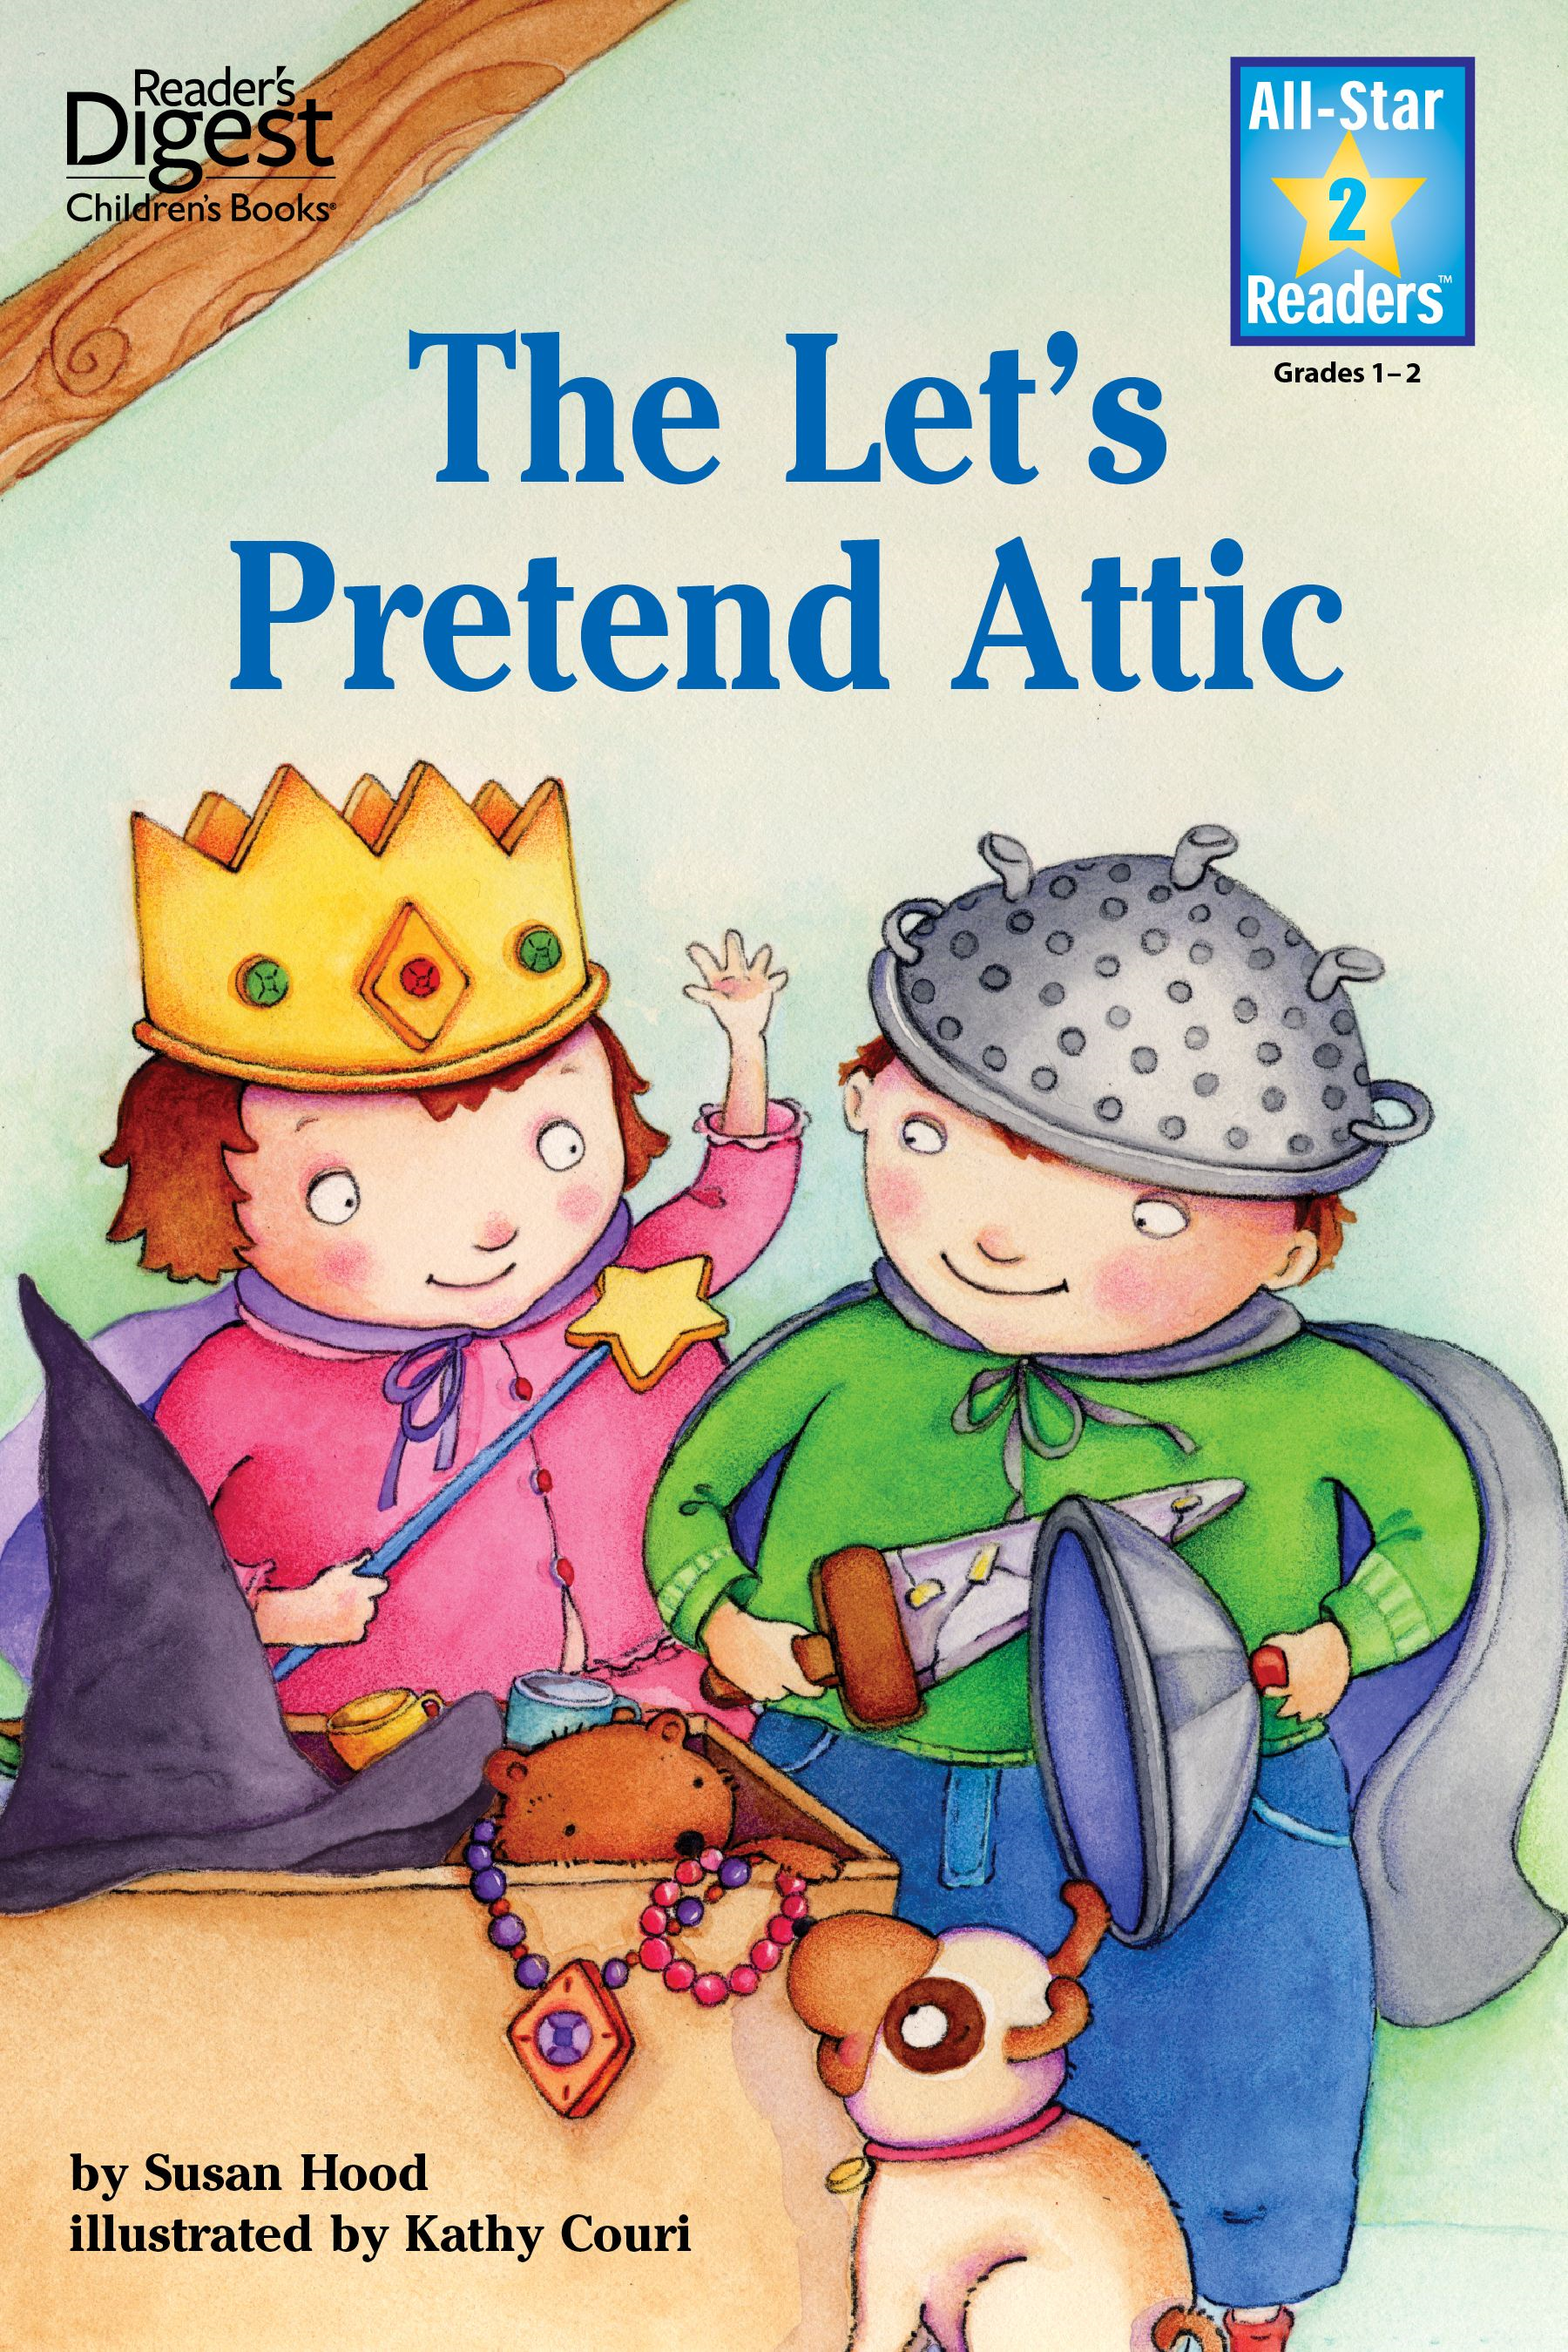 The Let's Pretend Attic (Reader's Digest) (All-Star Readers)